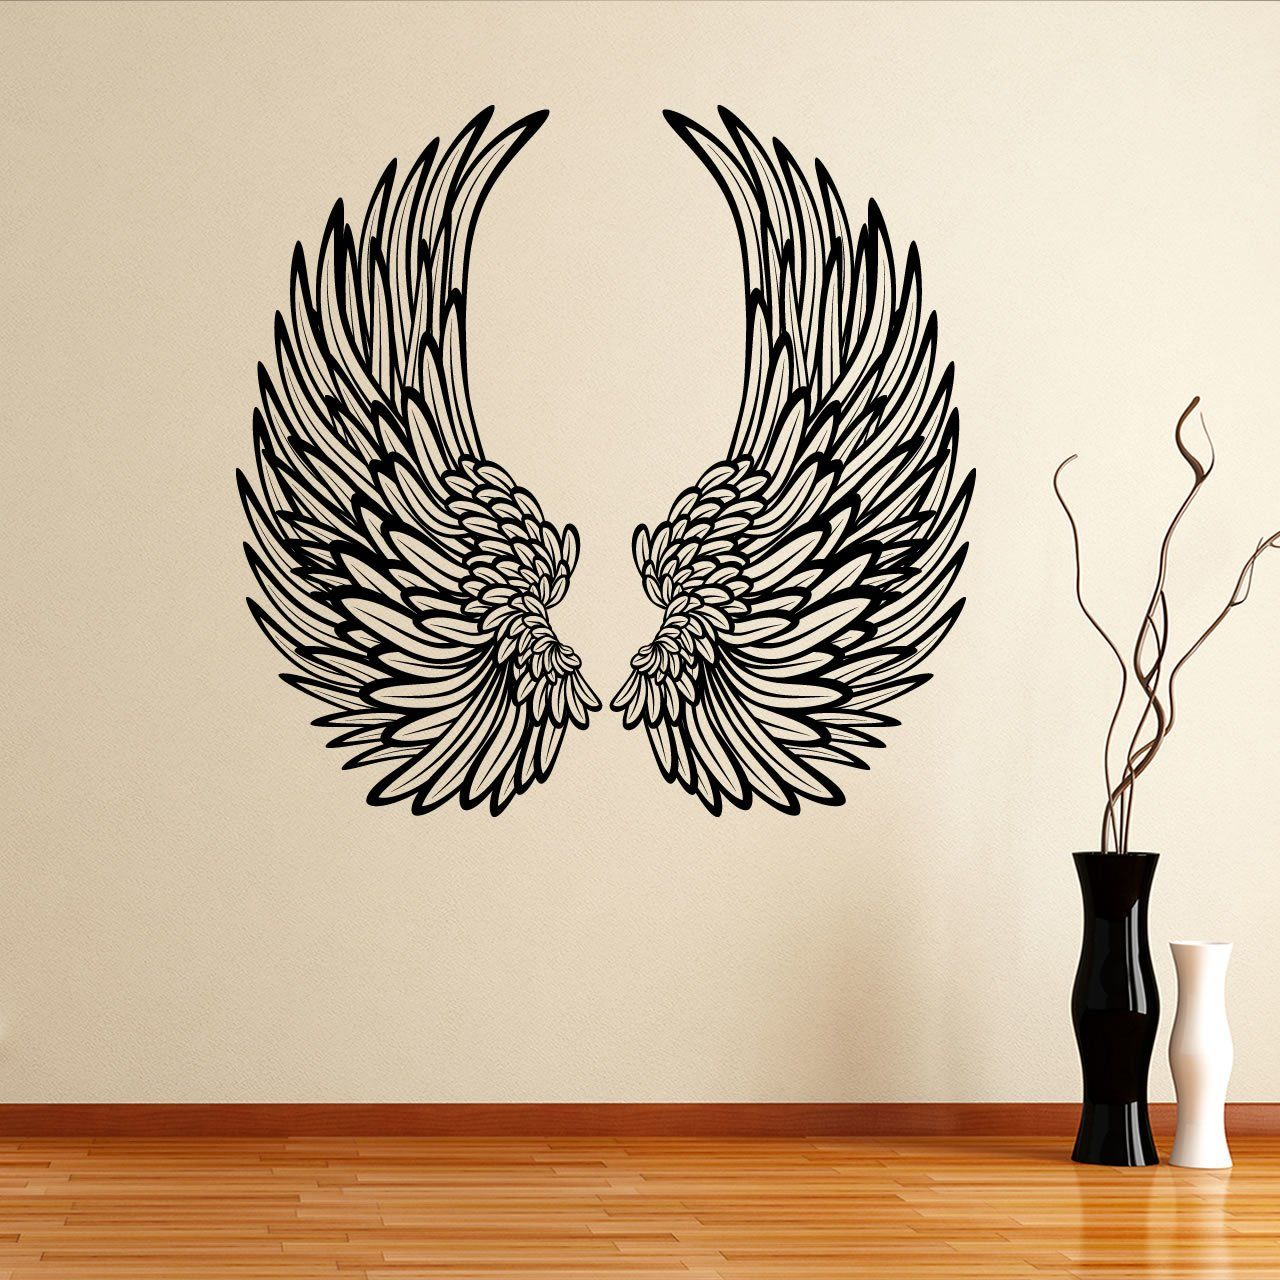 Decorative Angel Wings Wall Sticker Decal In 2020